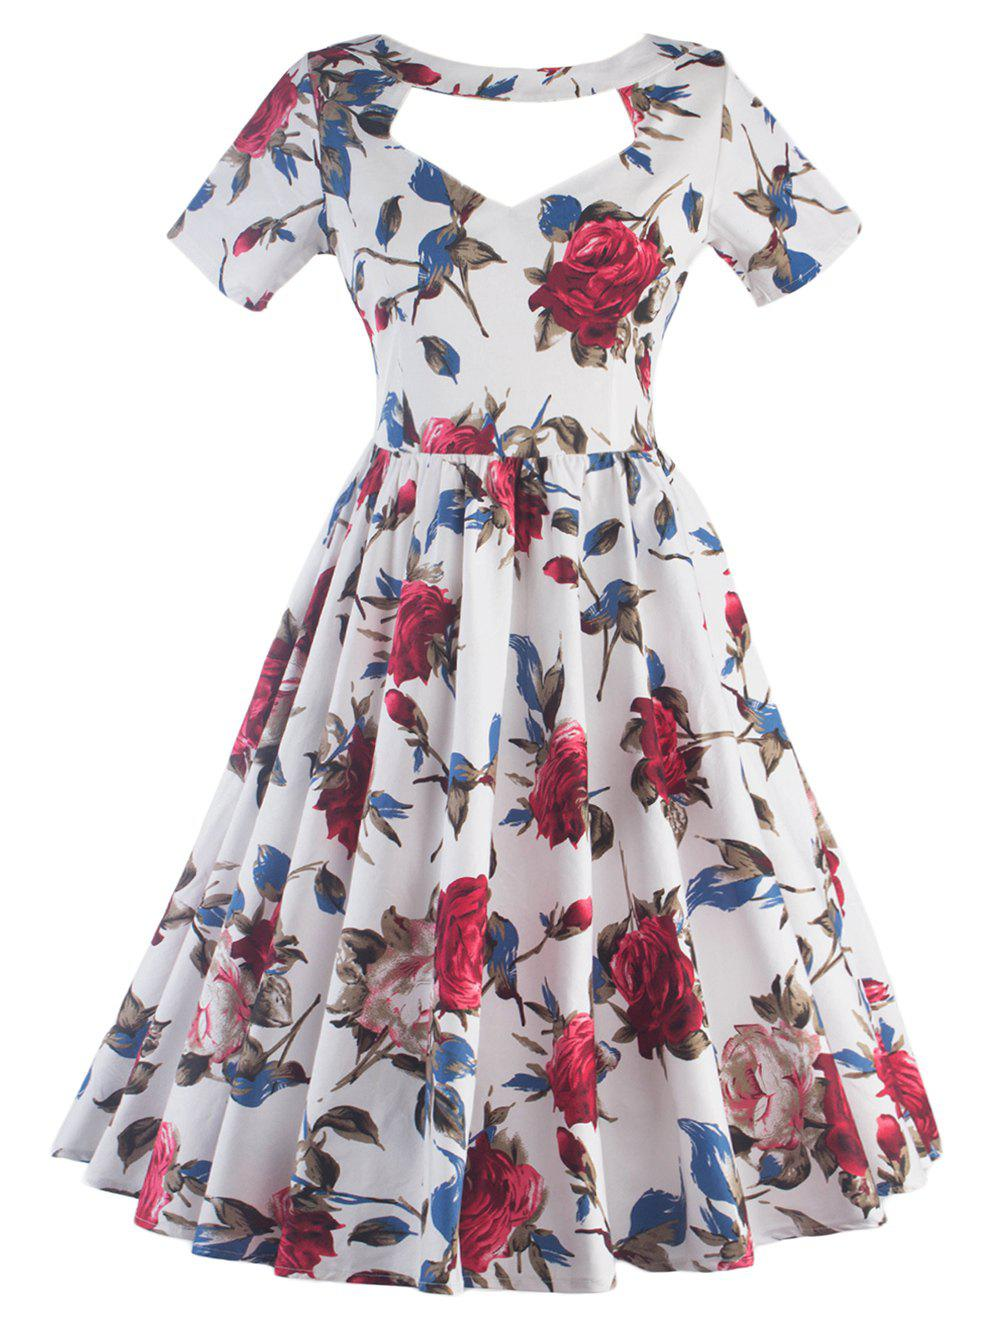 Halter évider Floral Print Pin Up Dress - Blanc M